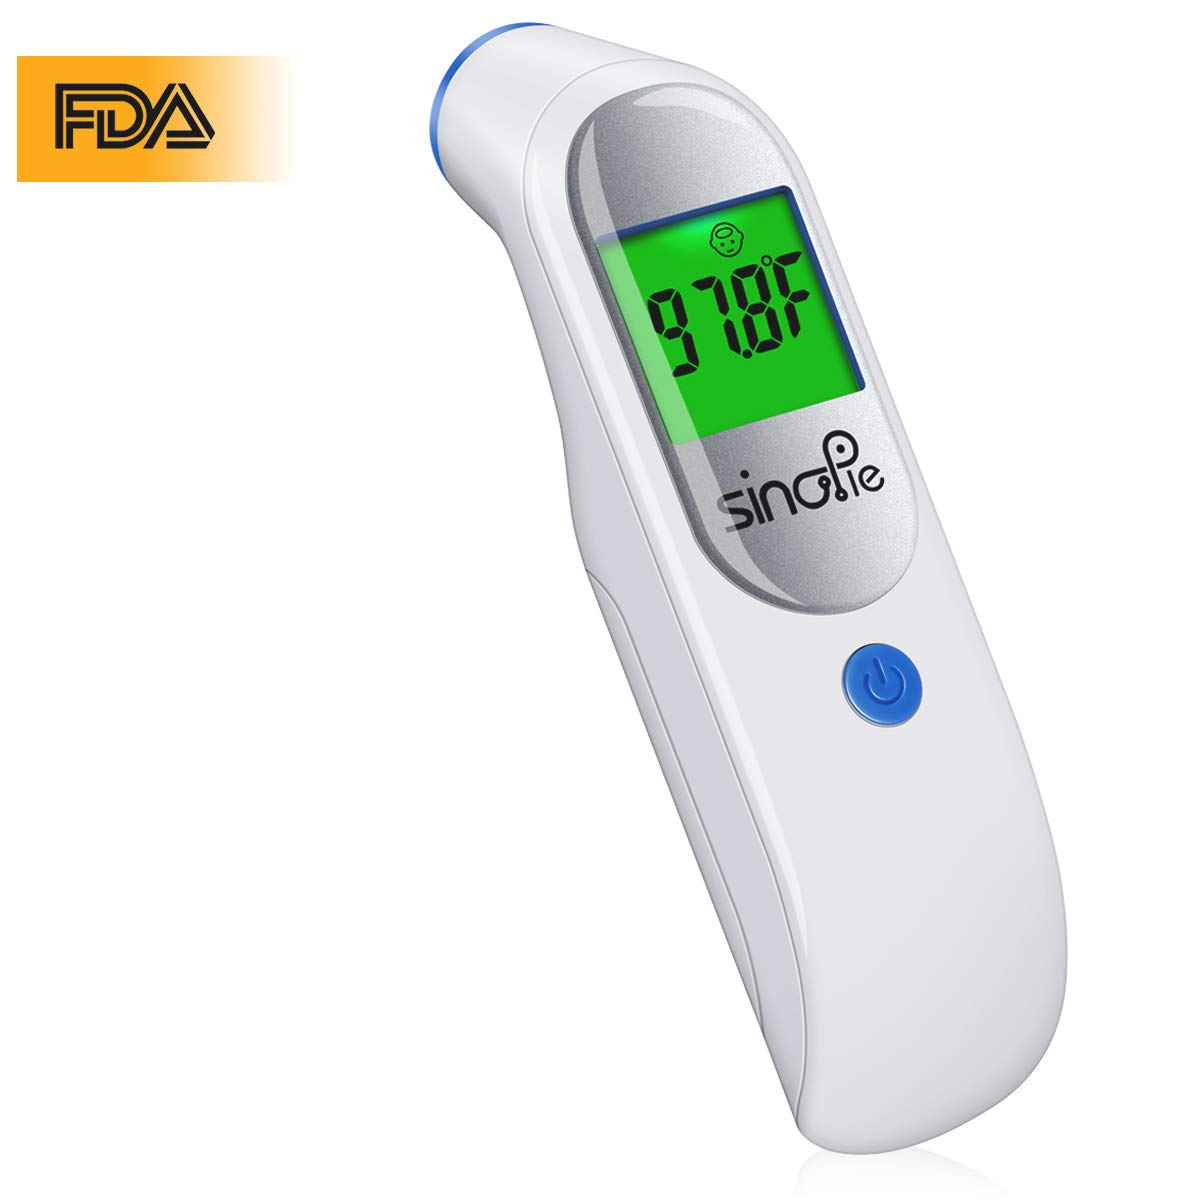 Baby Forehead Thermometer, Digital Infrared Medical Thermometer - FDA Approved Non Contact Digital Thermometer for